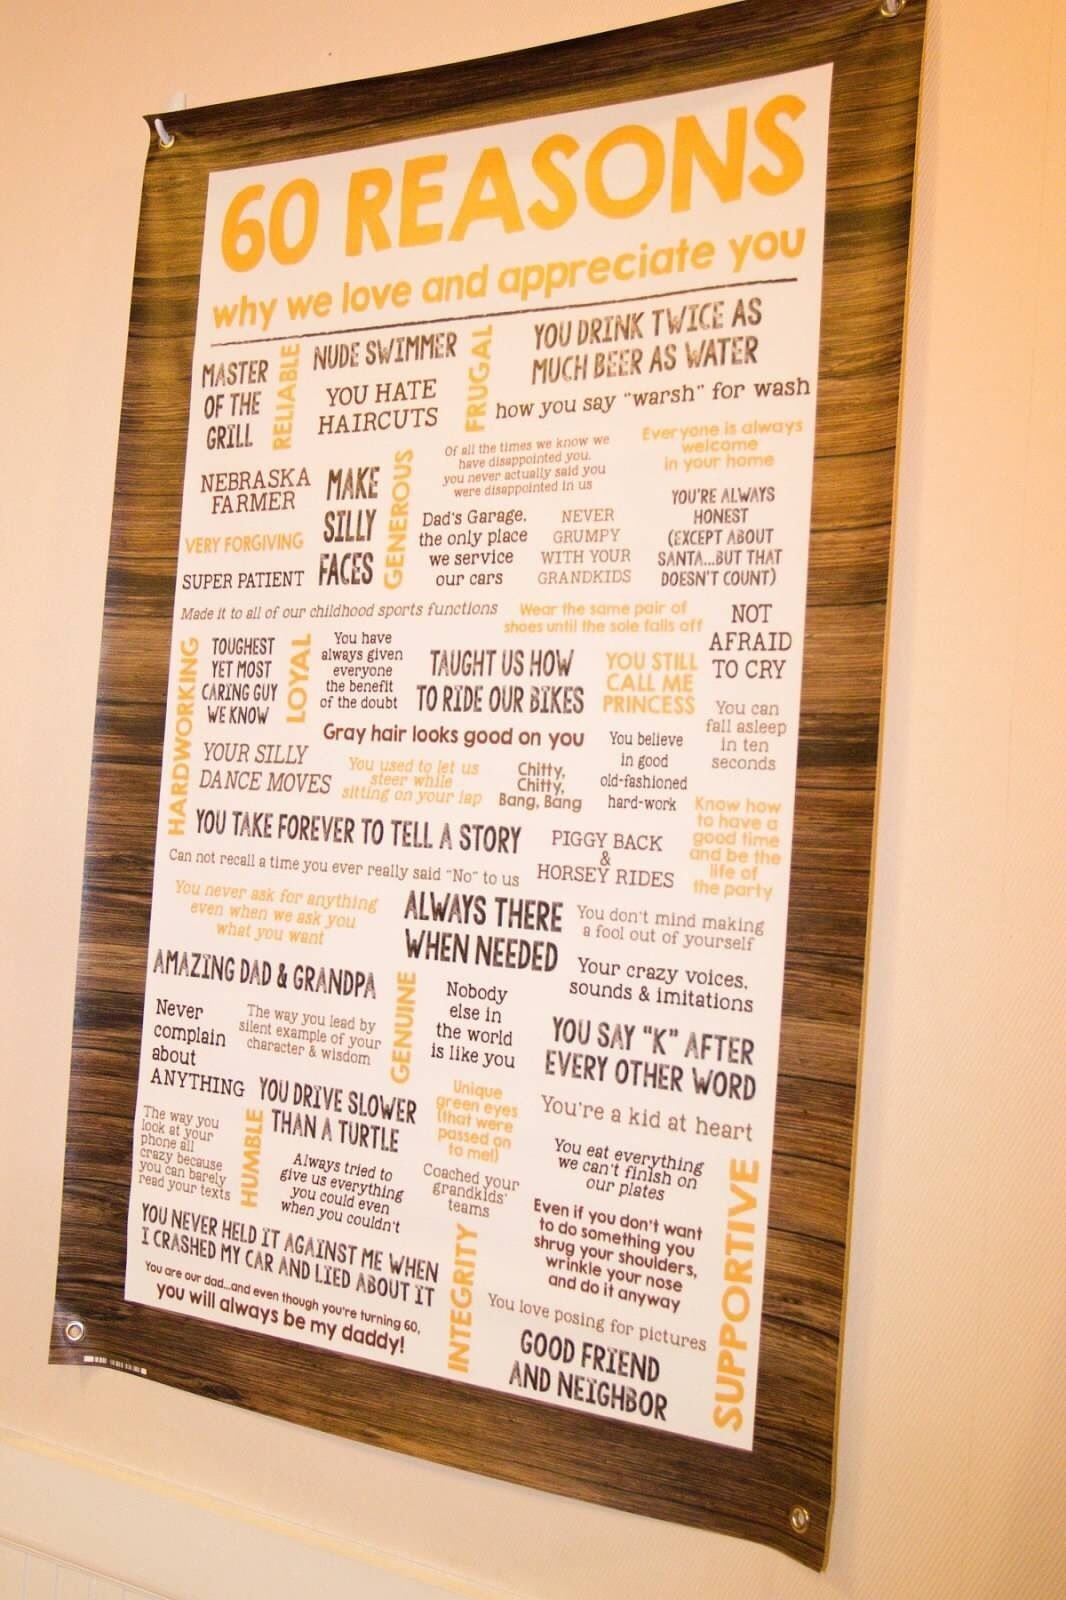 10 Stunning 60Th Birthday Gift Ideas For Men rustic 60th birthday party 60 reasons why we love you banner posh 5 2021